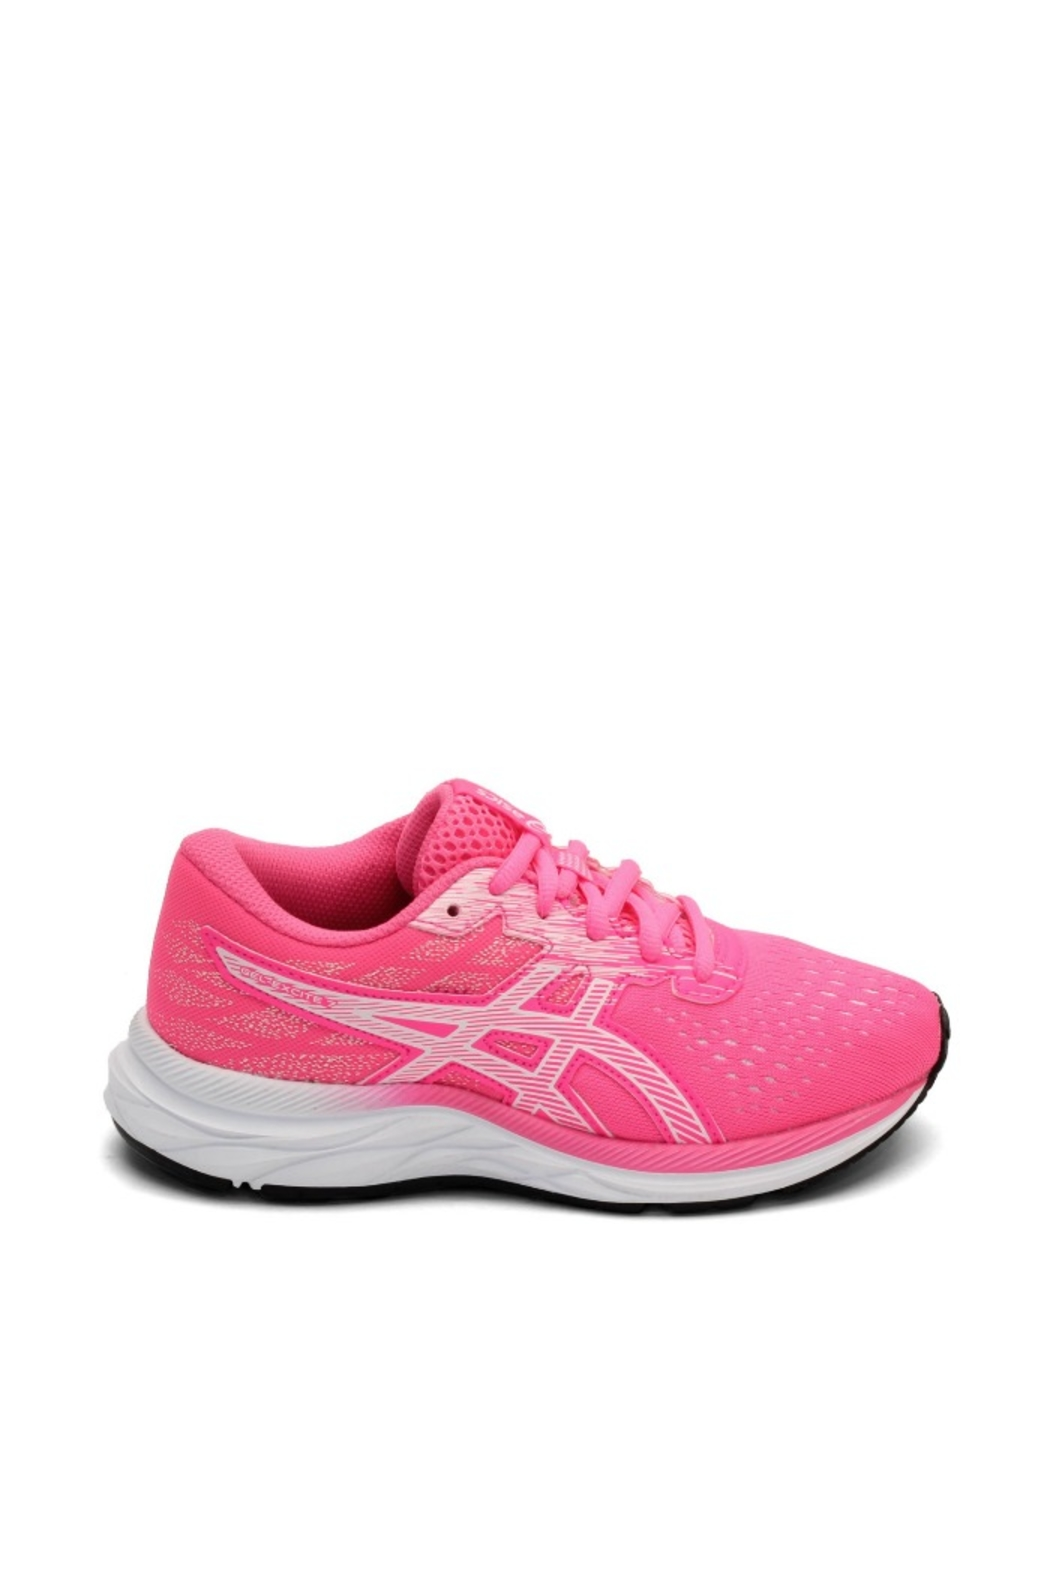 Asics Gel Excite 7 GS in Hot Pink/White - Front Full Image